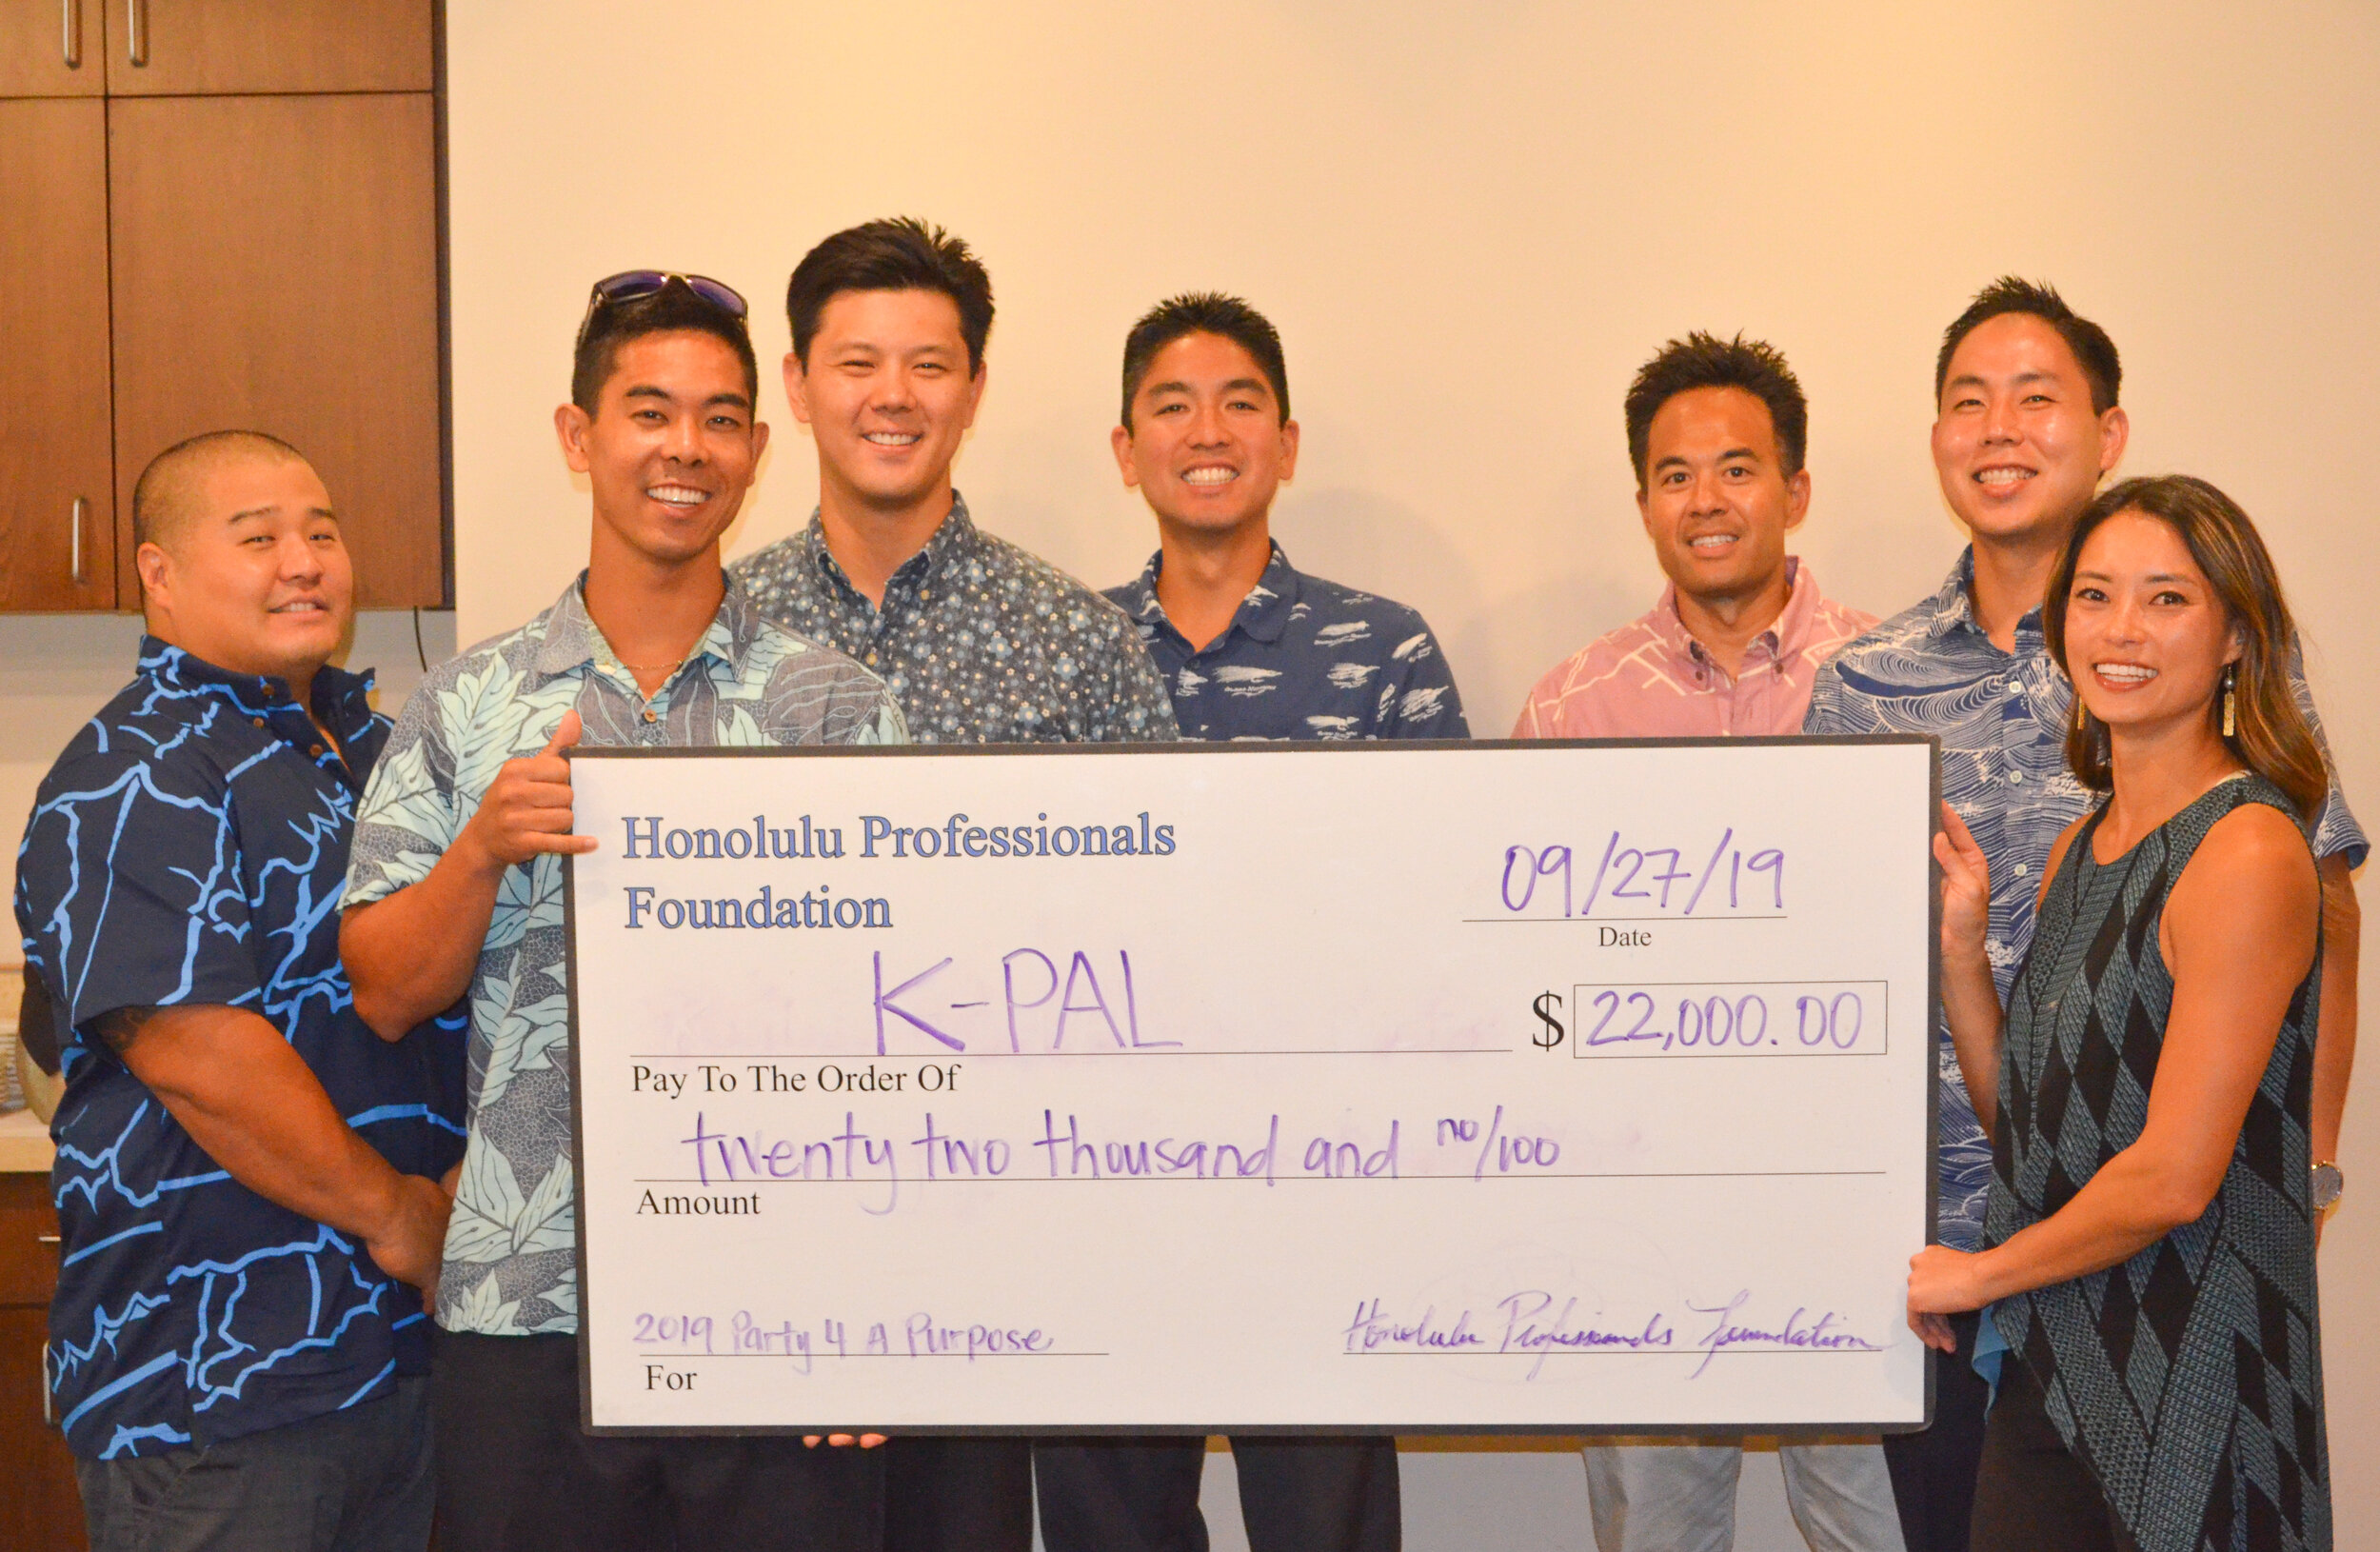 HPF pictured with Sgt. Lance Okasaki from the Kaua'i Police Activities League (K-PAL).